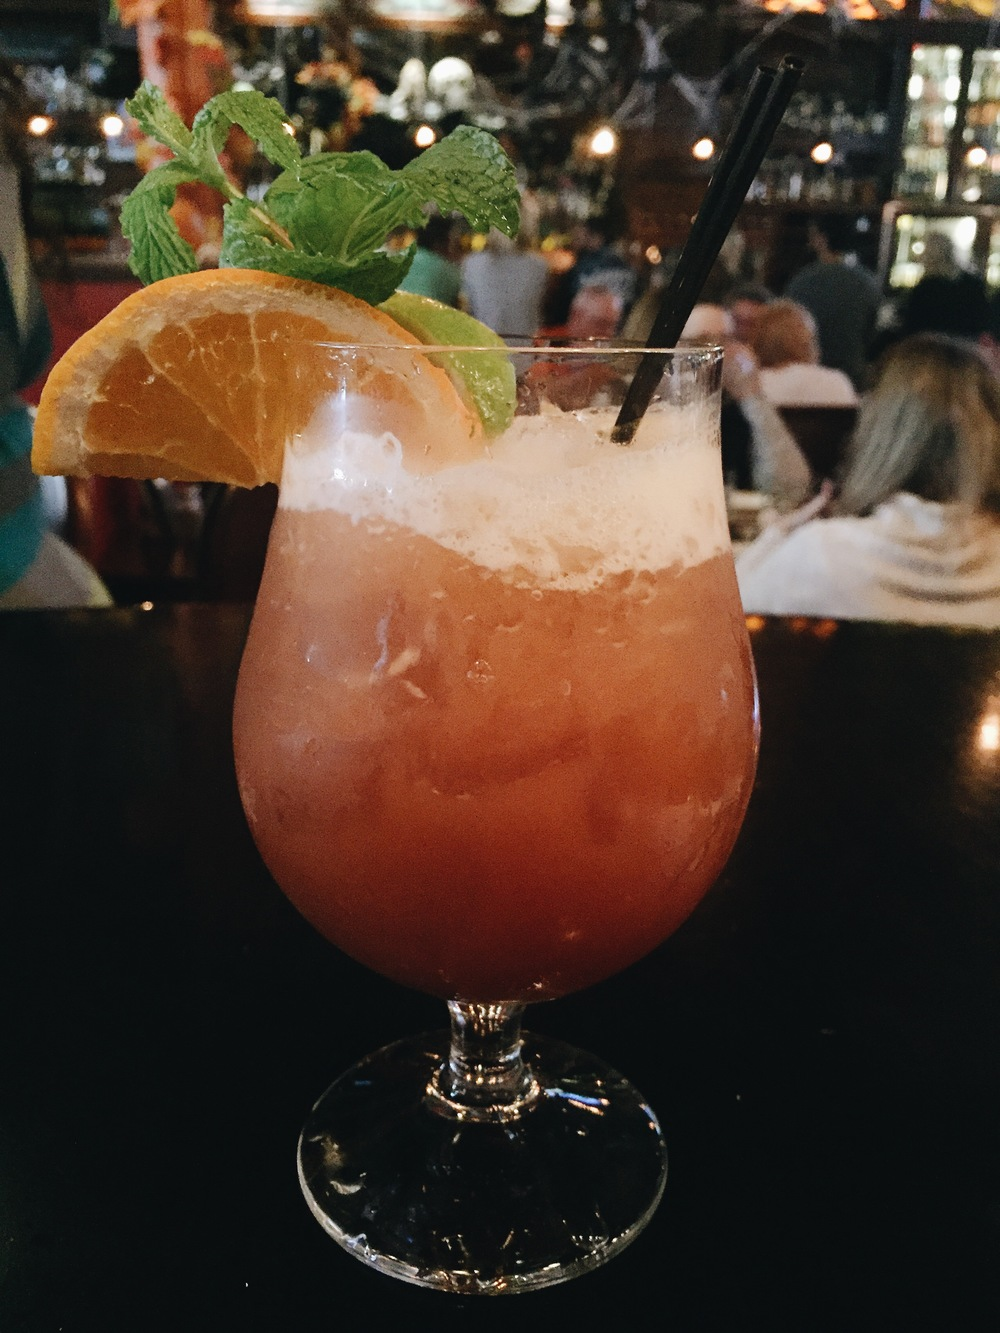 """A drink at the Bittercreek Alehouse called a """"Zombie."""" Super tasty drink with primarily Rum, but a really strong one! Be careful if you order this! ;)"""